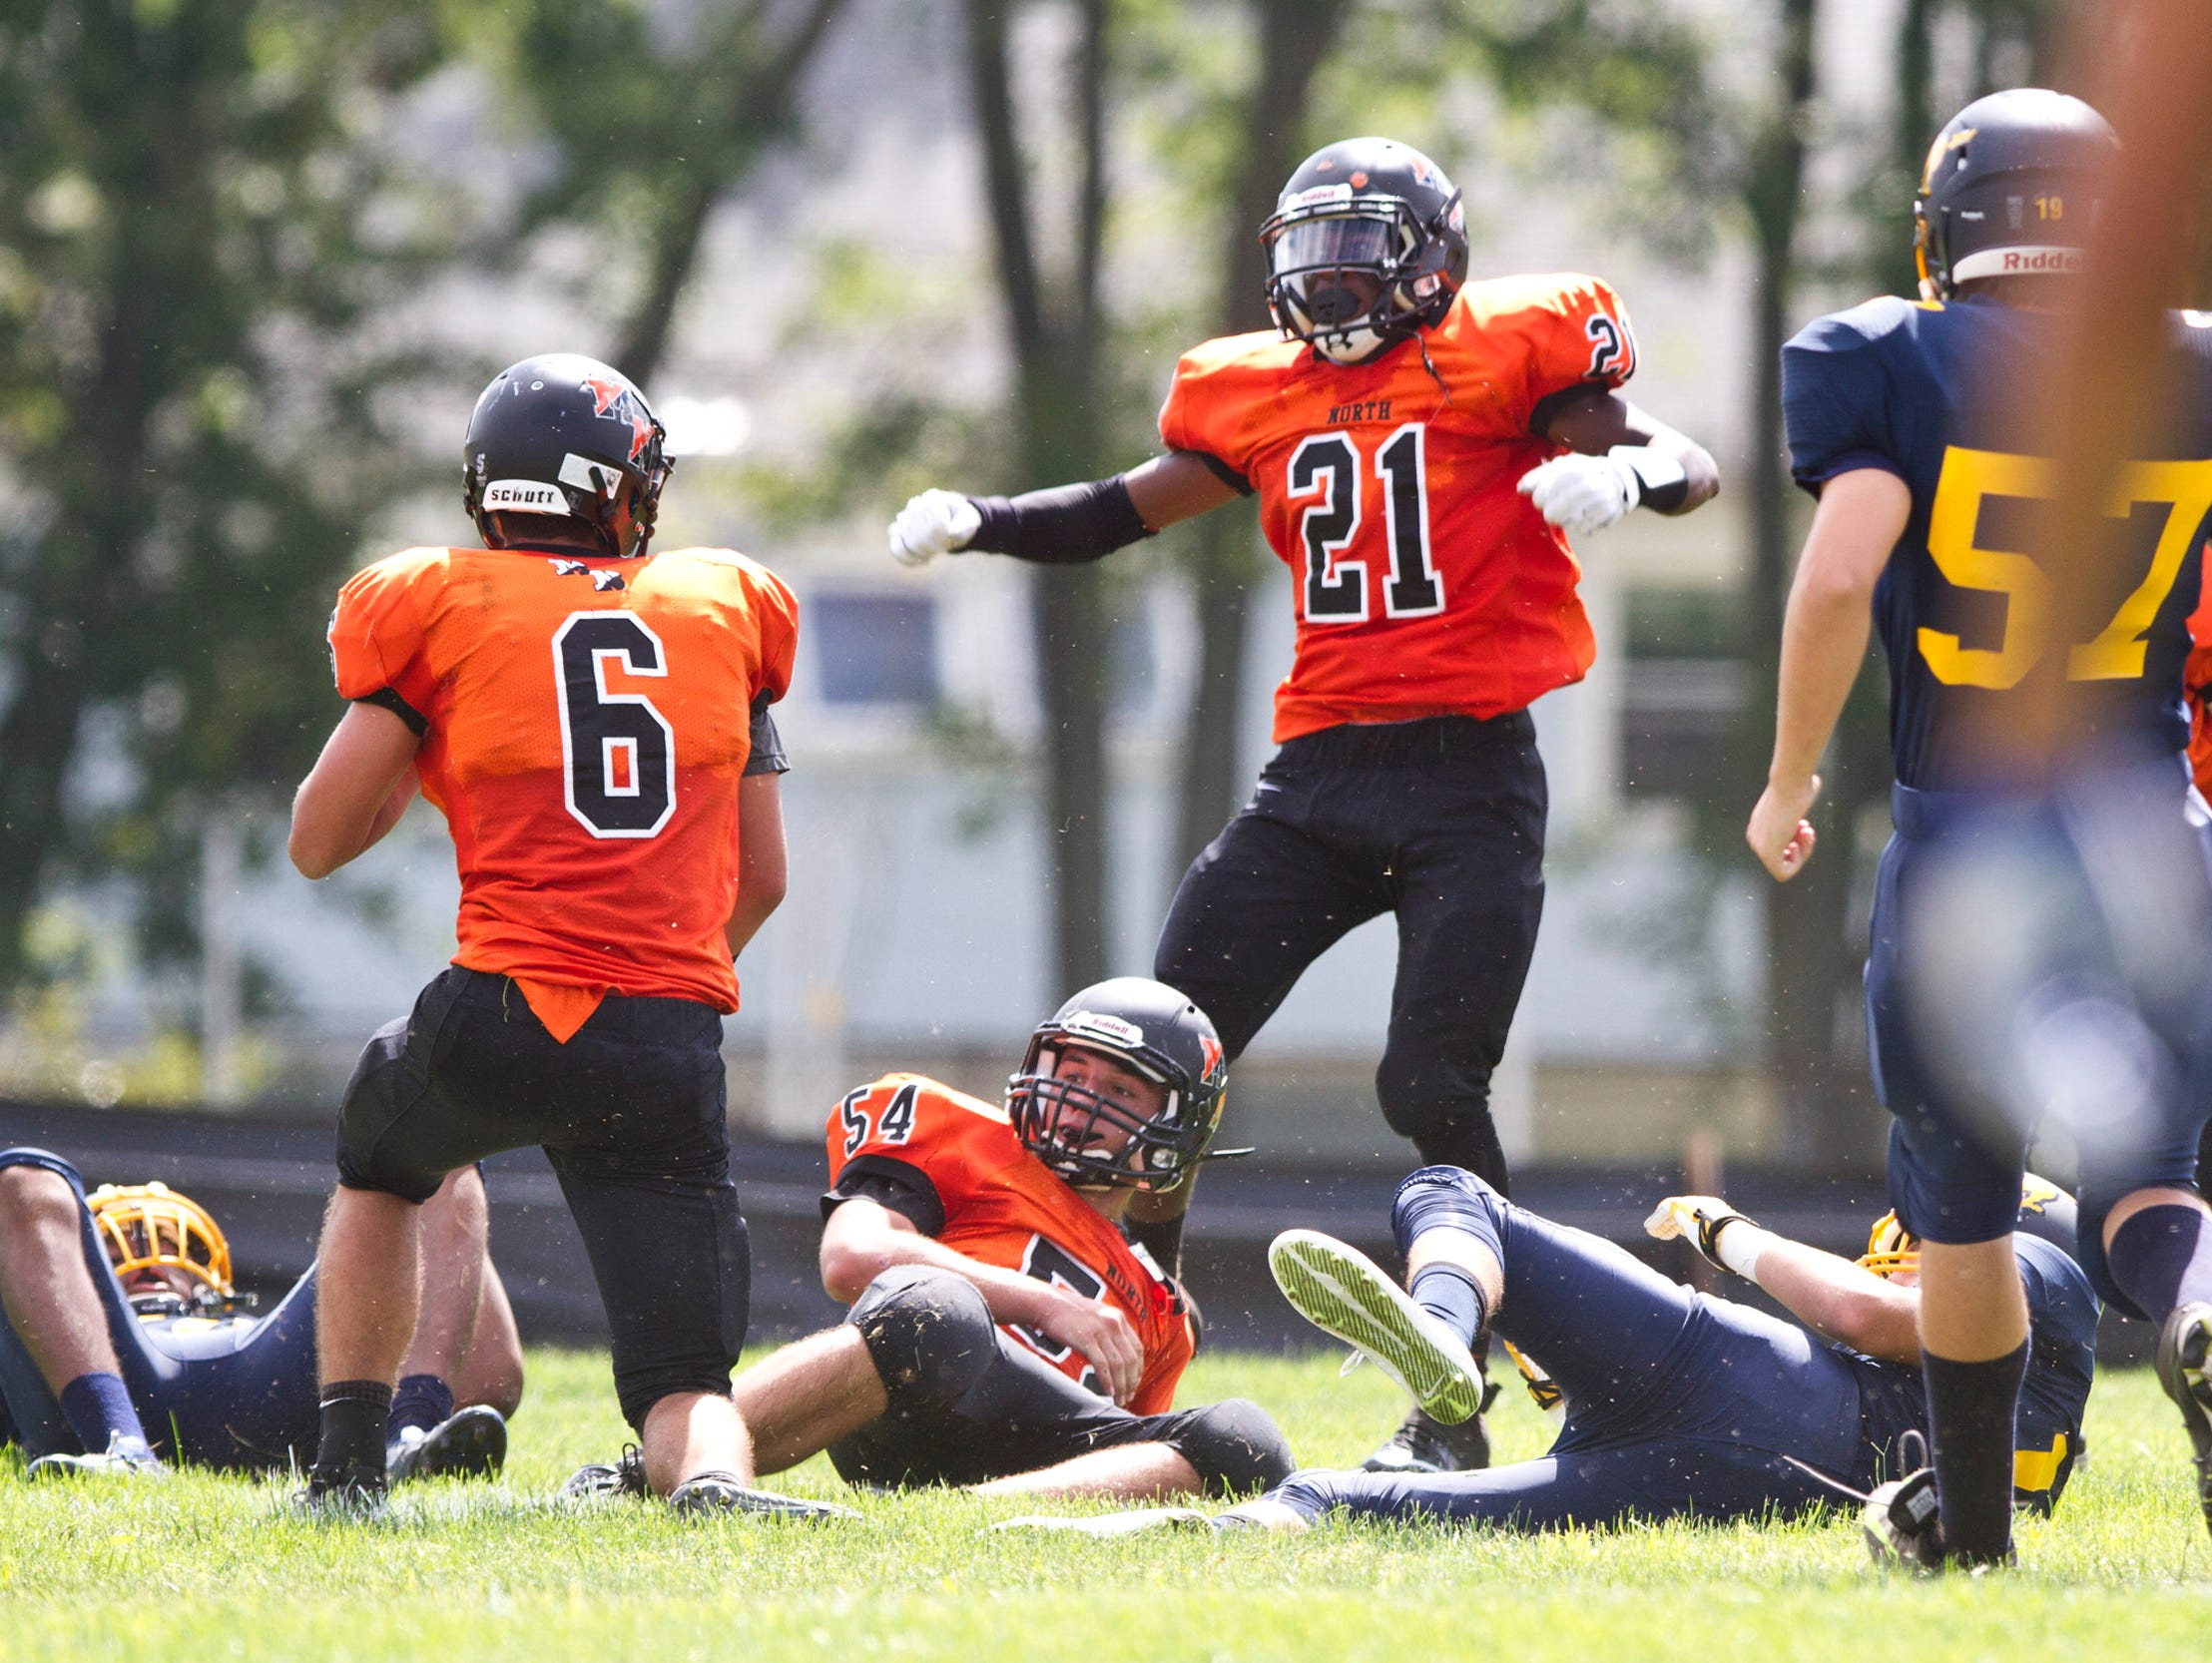 Middletown North's Josh Gomez (6) Jacob Dean (54) and Dwight Wilkerson (21) celebrate a touchdown after a blocked punt late in the second quarter. Middletown North vs Marlboro football. Marlboro, NJ Saturday, September 19, 2015 @dhoodhood